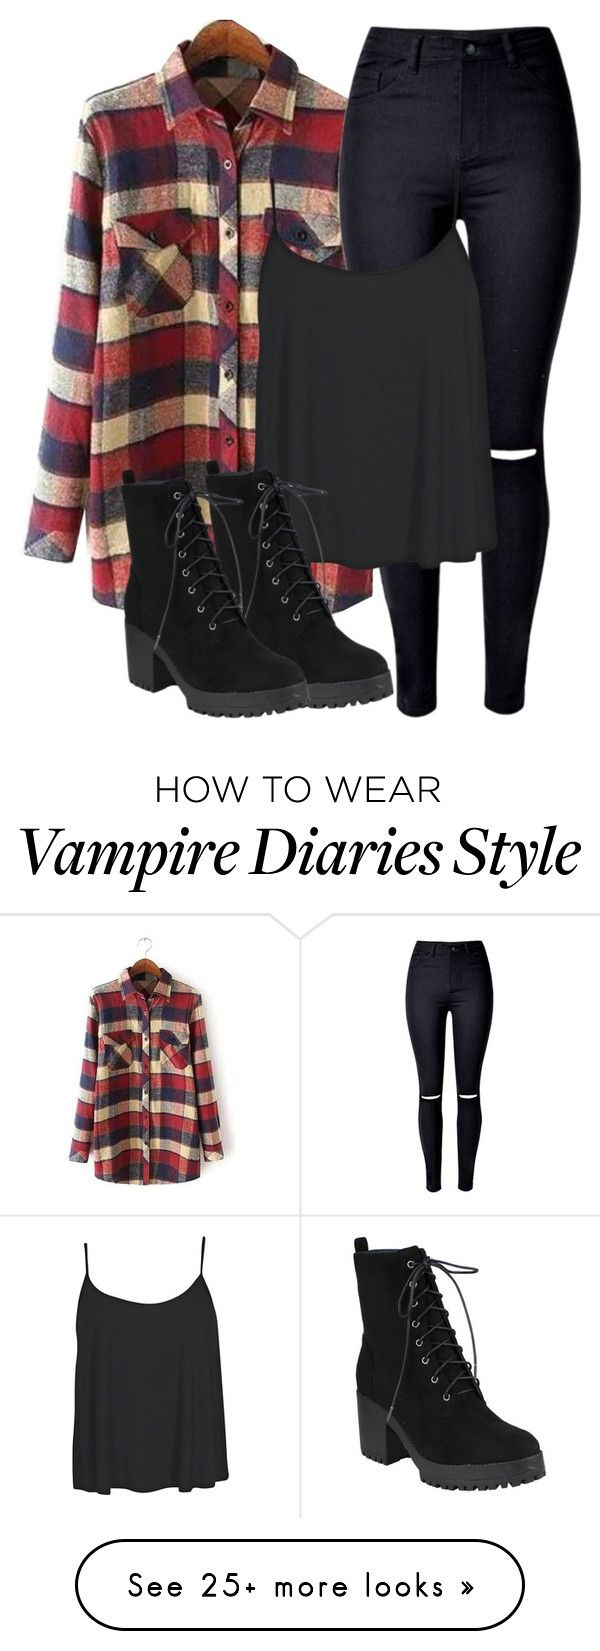 """Stefan Inspired Outfit - The Vampire Diaries / The Originals"" by fangsandfashion on Polyvore featuring WithChic and Boohoo"